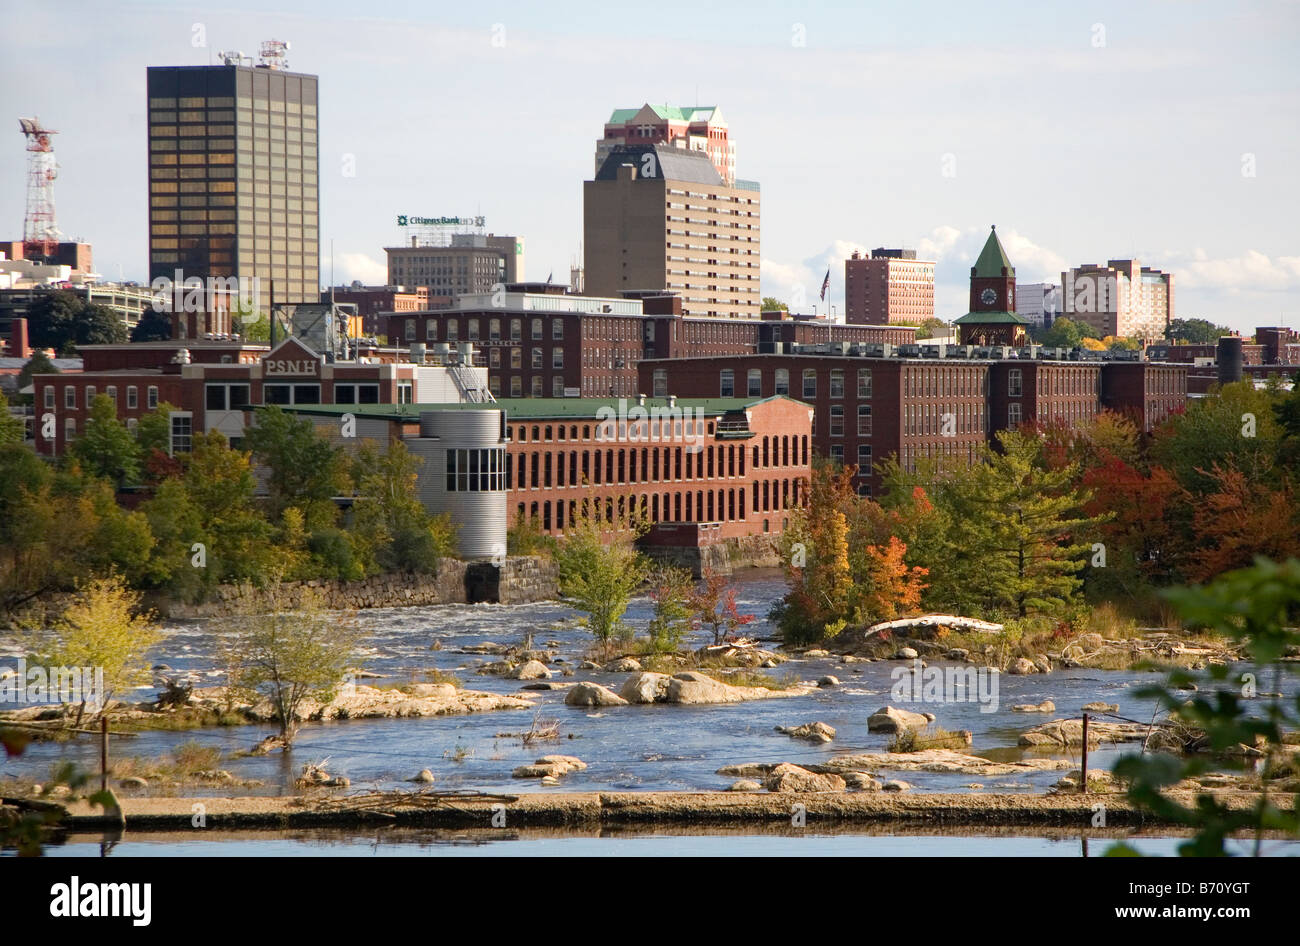 Merrimack River and mill district at Manchester New Hampshire USA - Stock Image